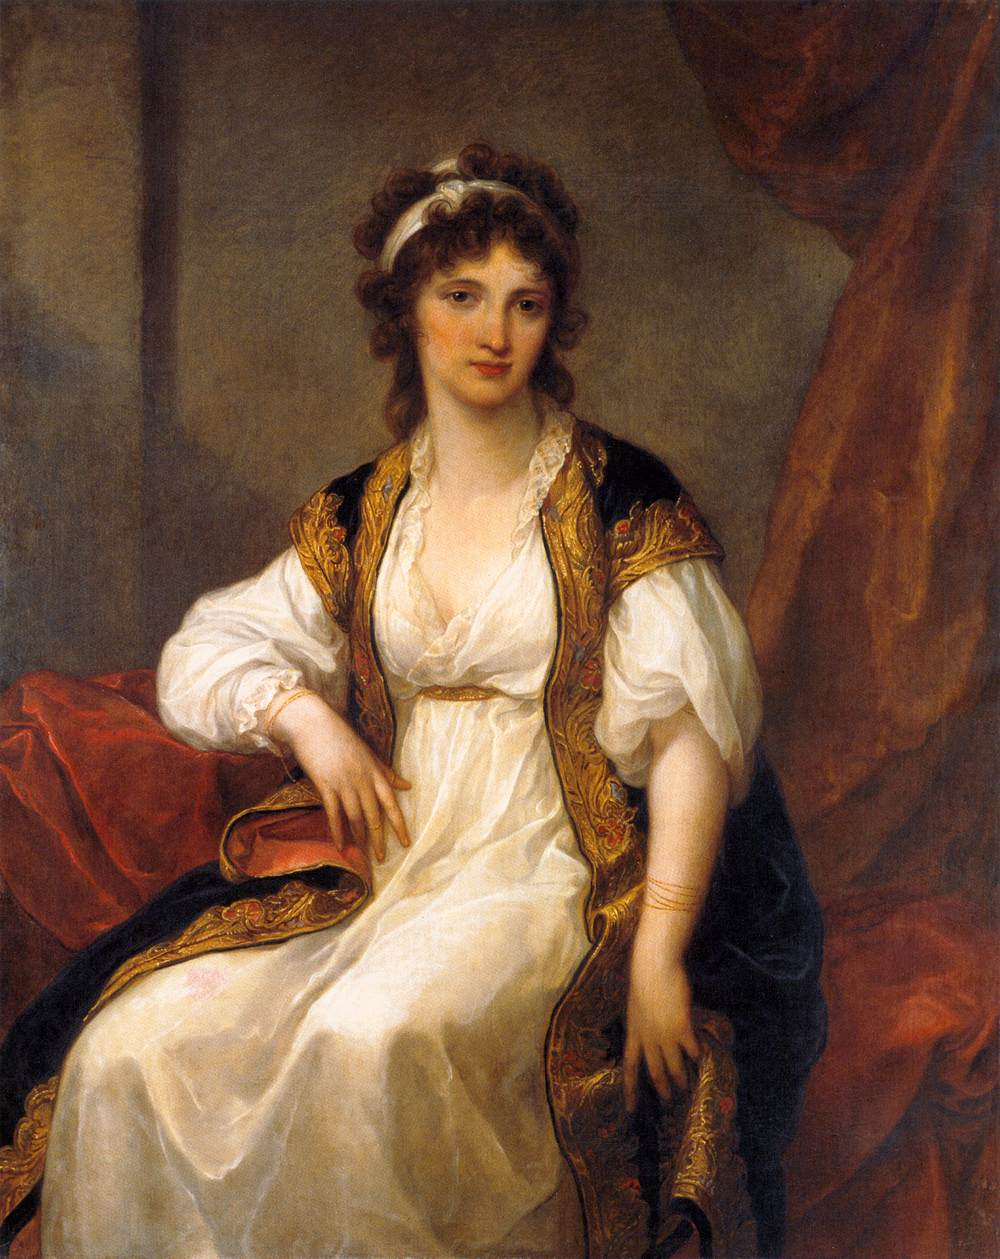 Angelica Kauffmann - Page 2 Angelica_Kauffmann_-_Portrait_of_a_Young_Woman_-_WGA12096